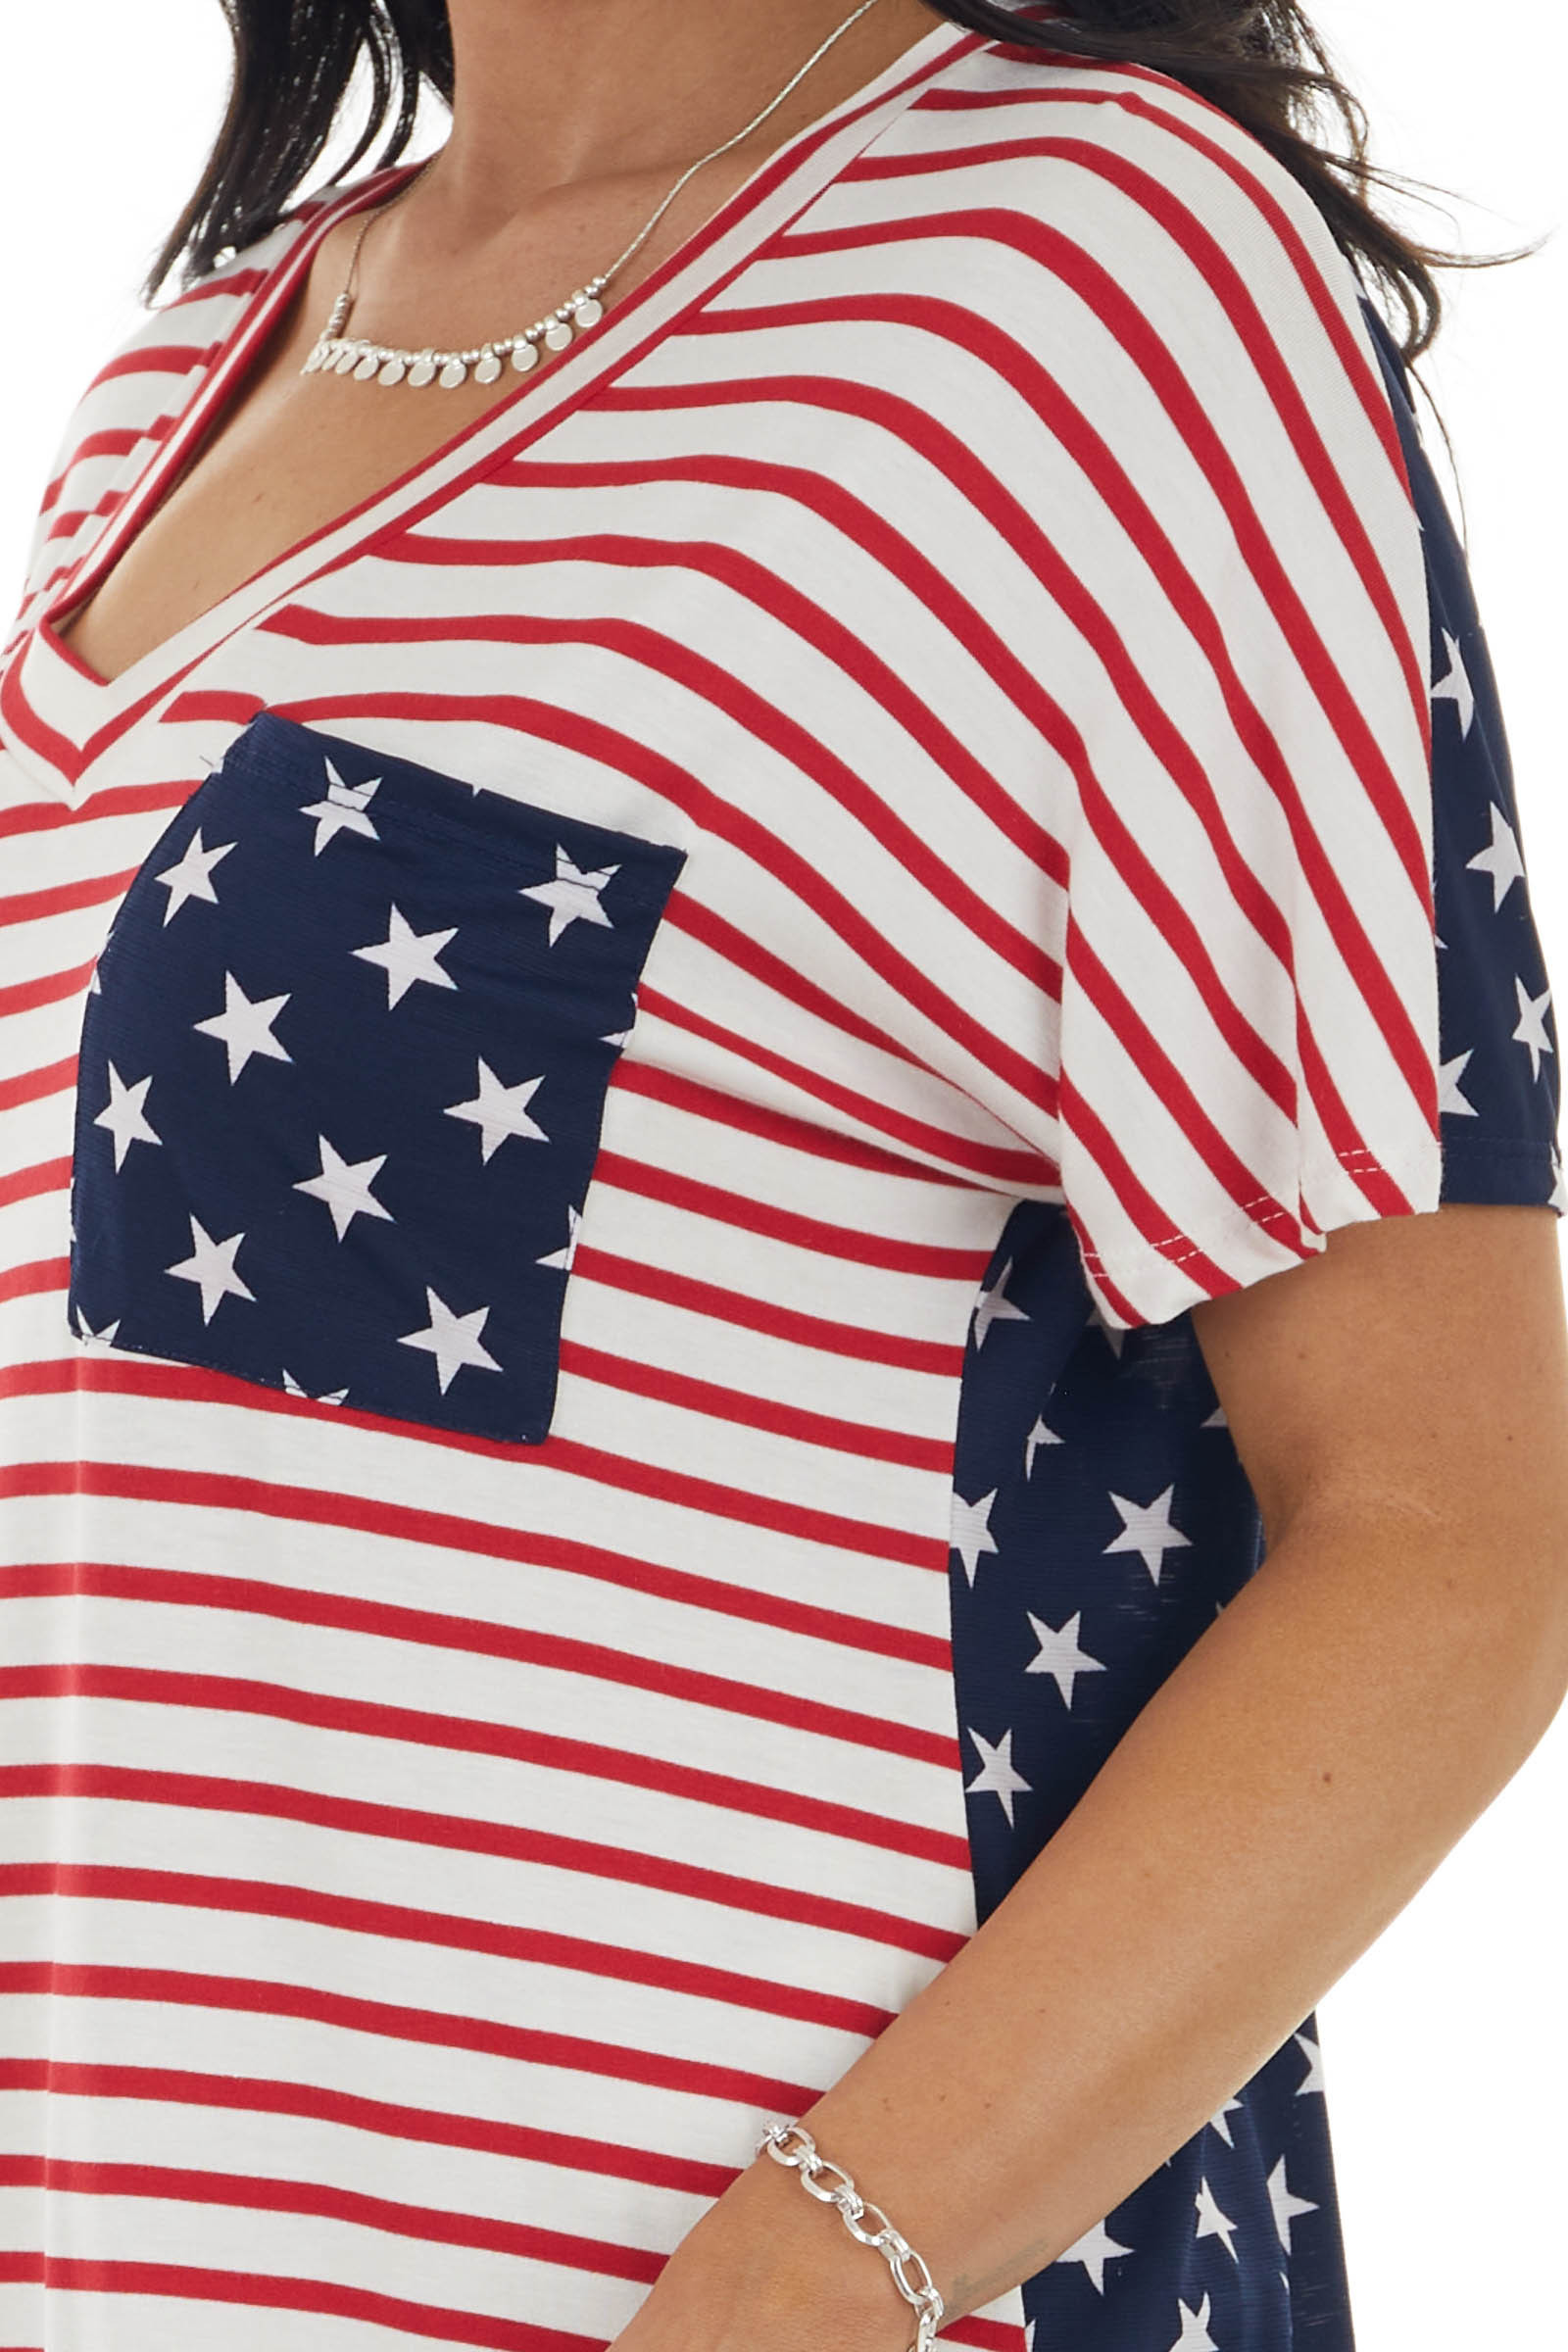 Navy Stars and Stripes Printed Knit Tee with Front Pocket